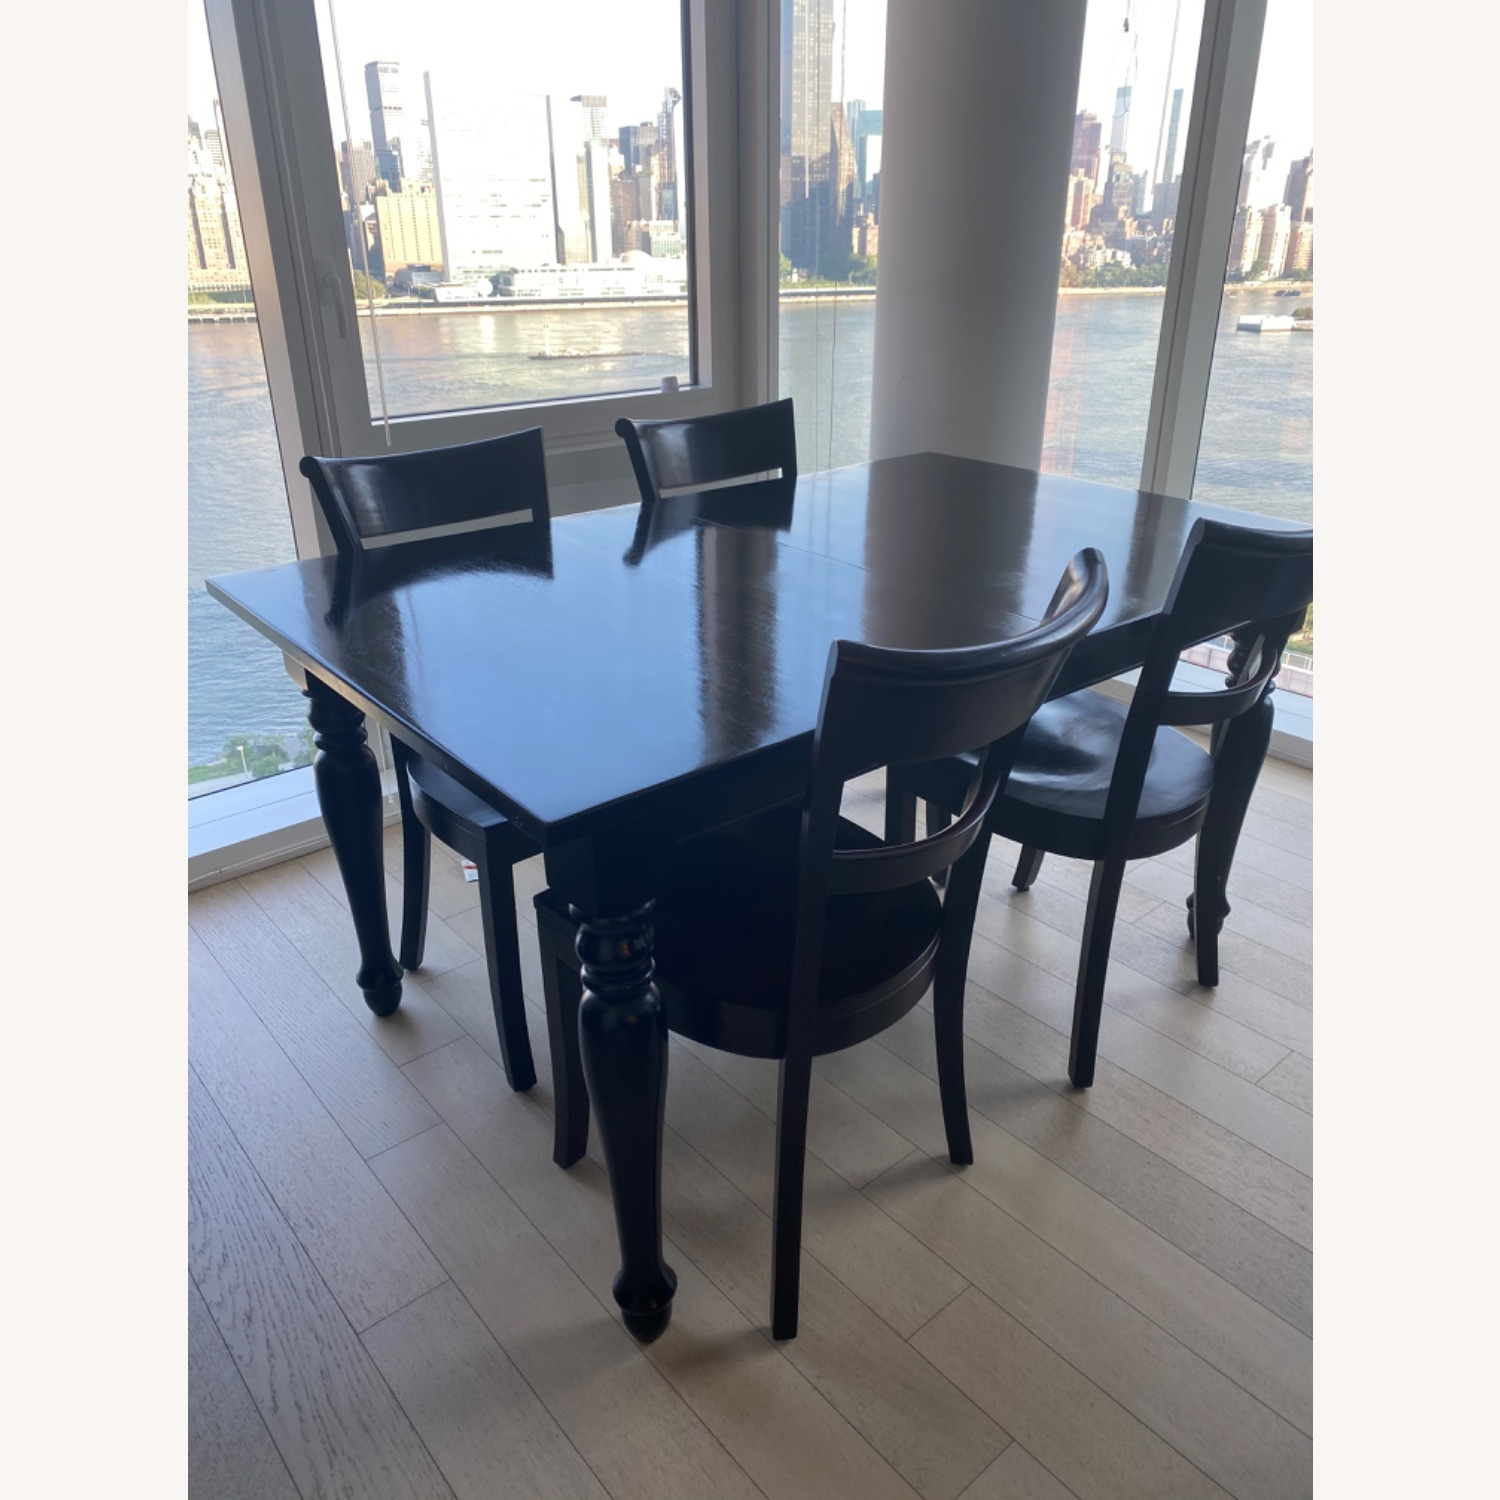 Crate & Barrel Kipling Table and 4 Chairs - image-1